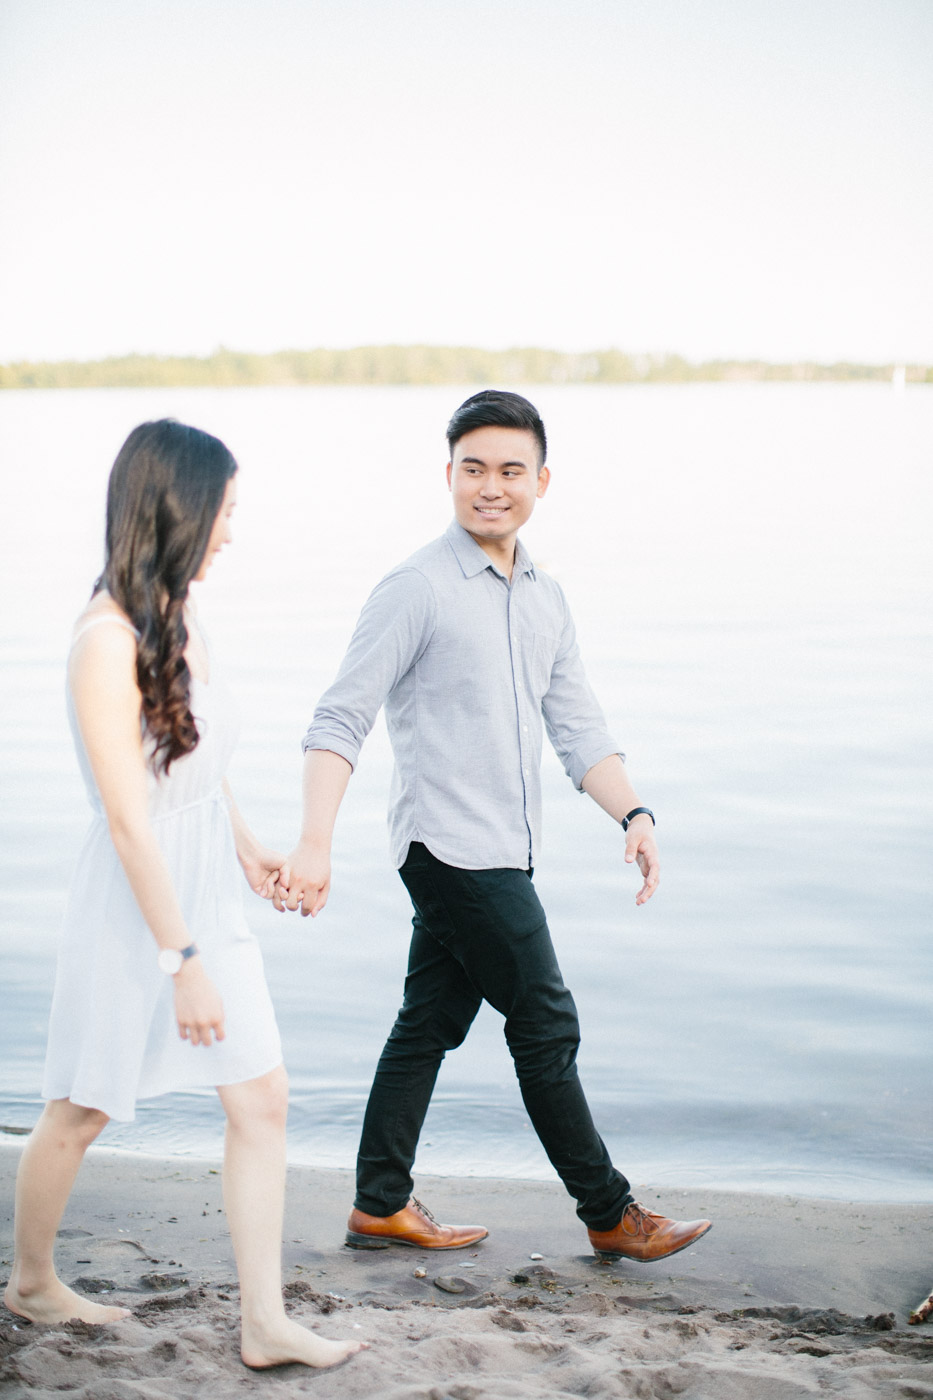 toronto_wedding_photographer_engagement_beach-110.jpg